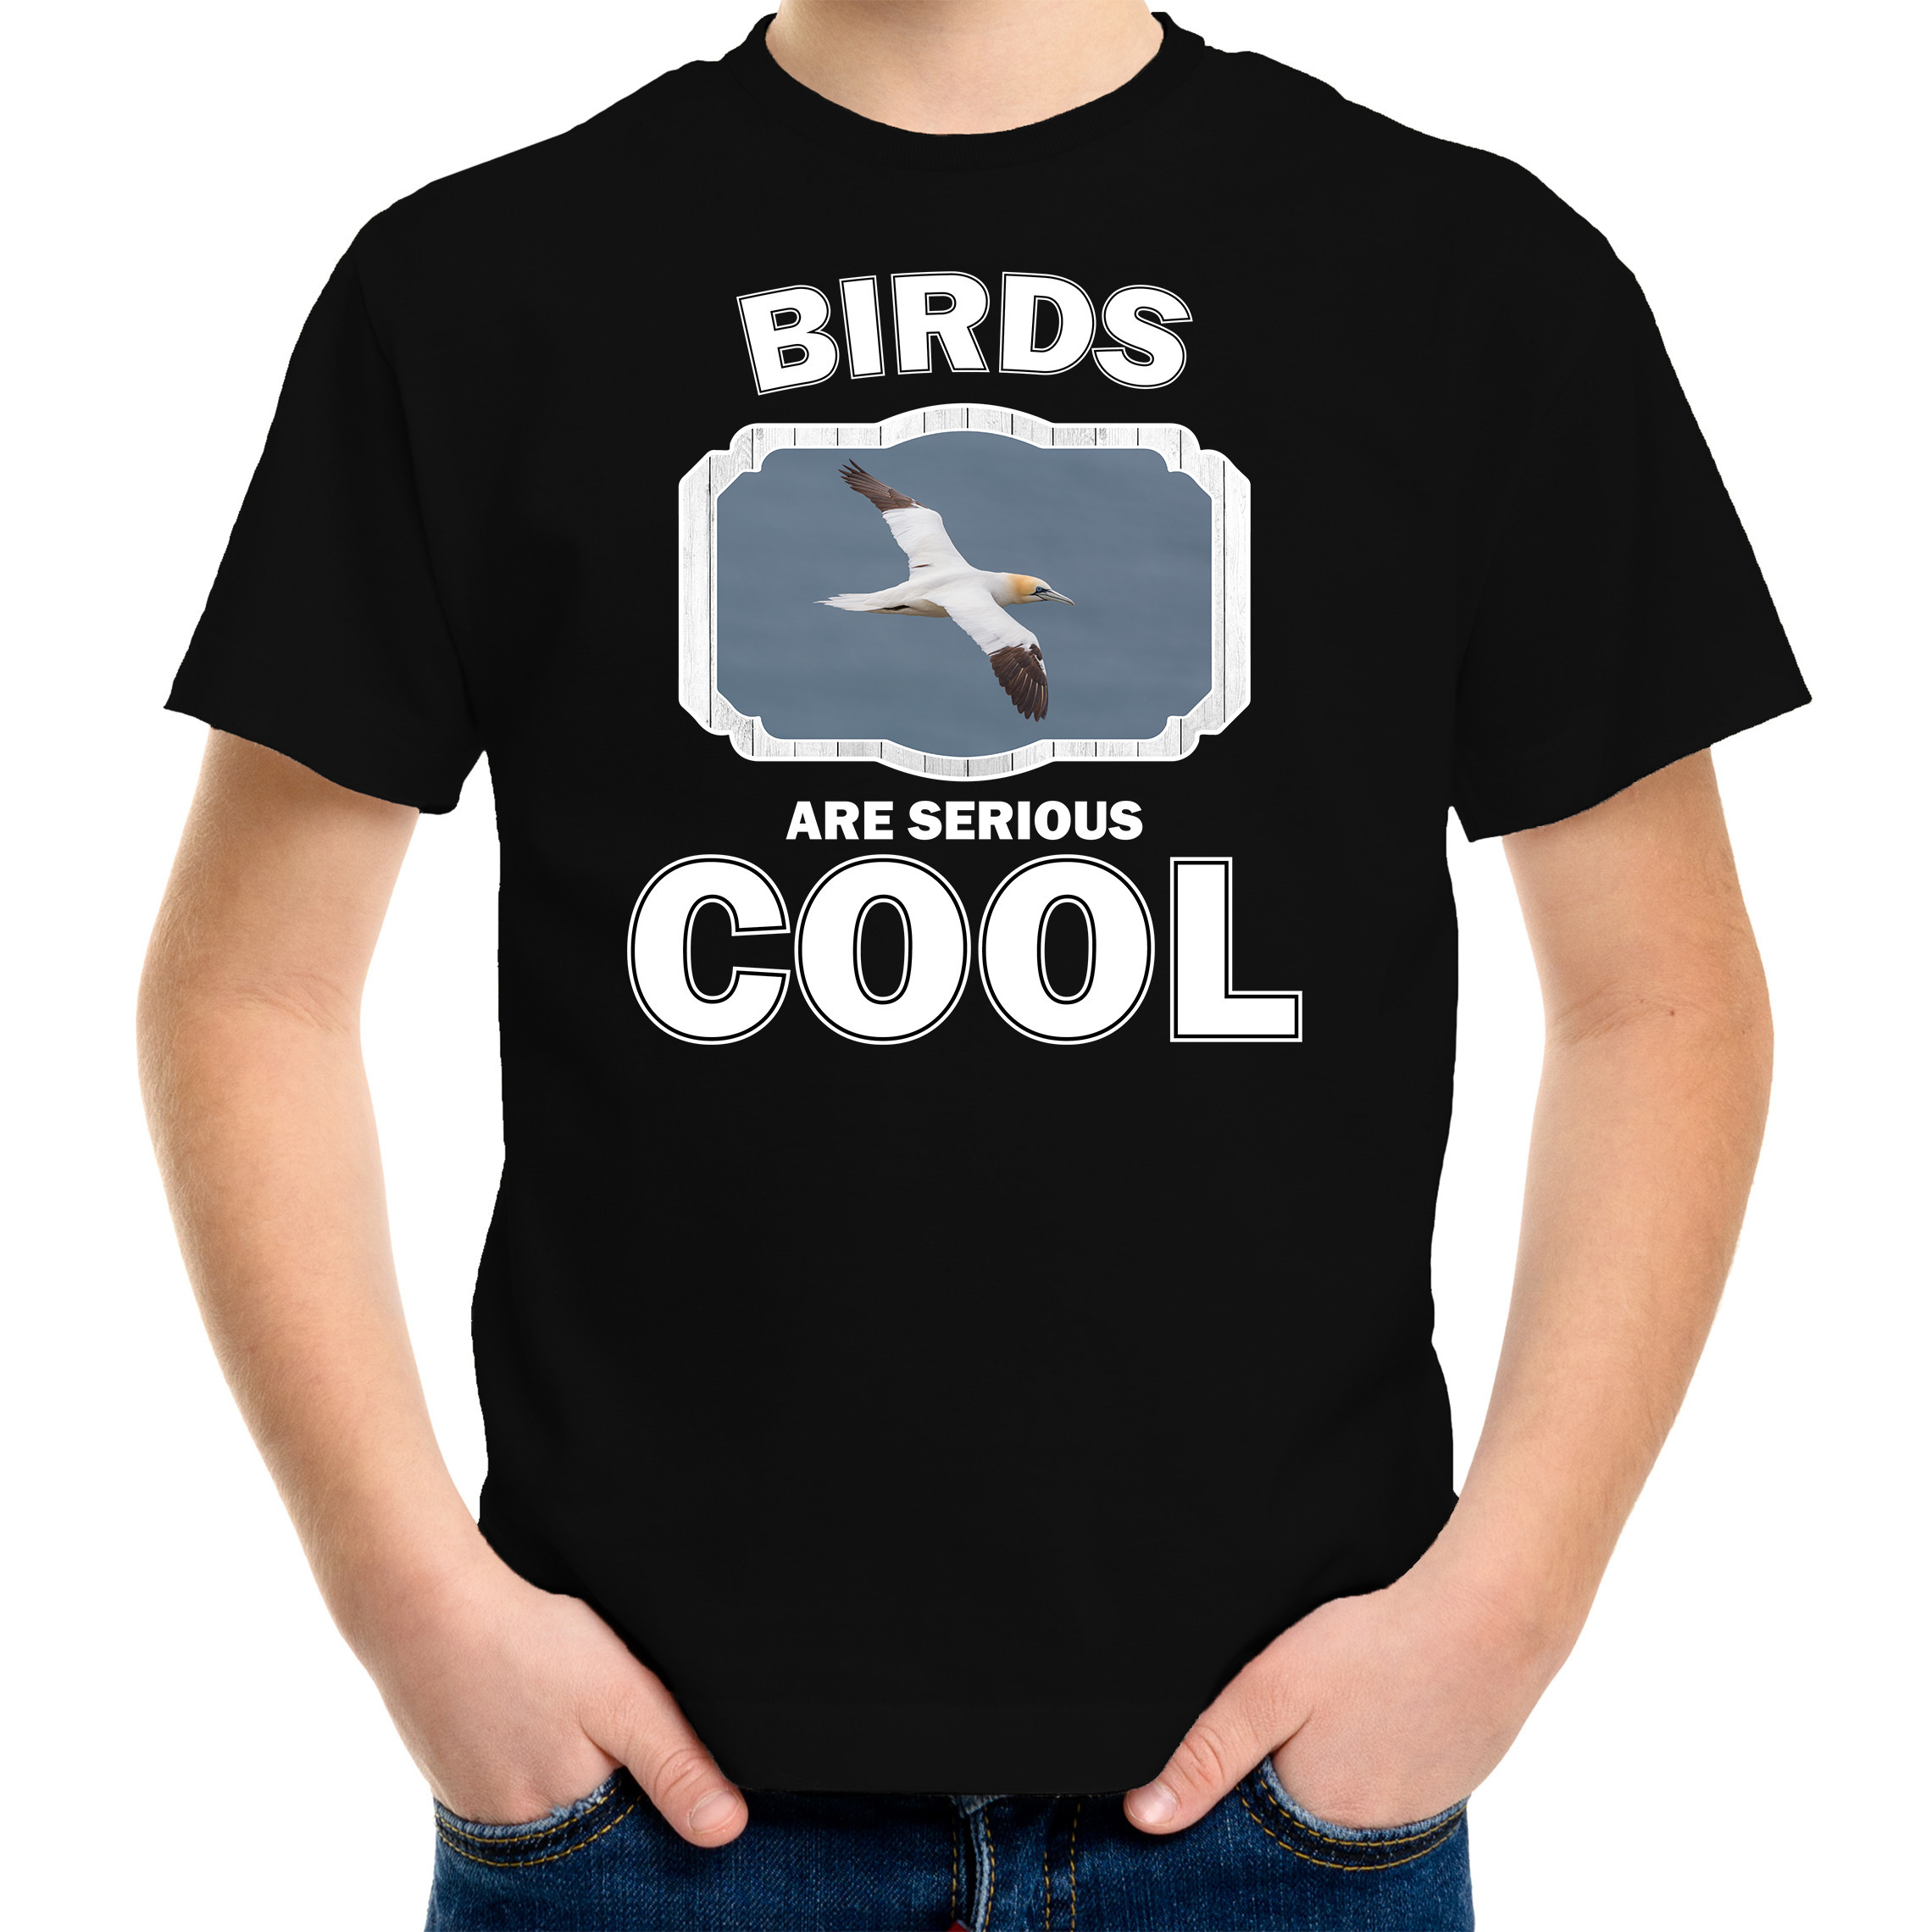 T-shirt birds are serious cool zwart kinderen - vogels/ jan van gent vogel shirt